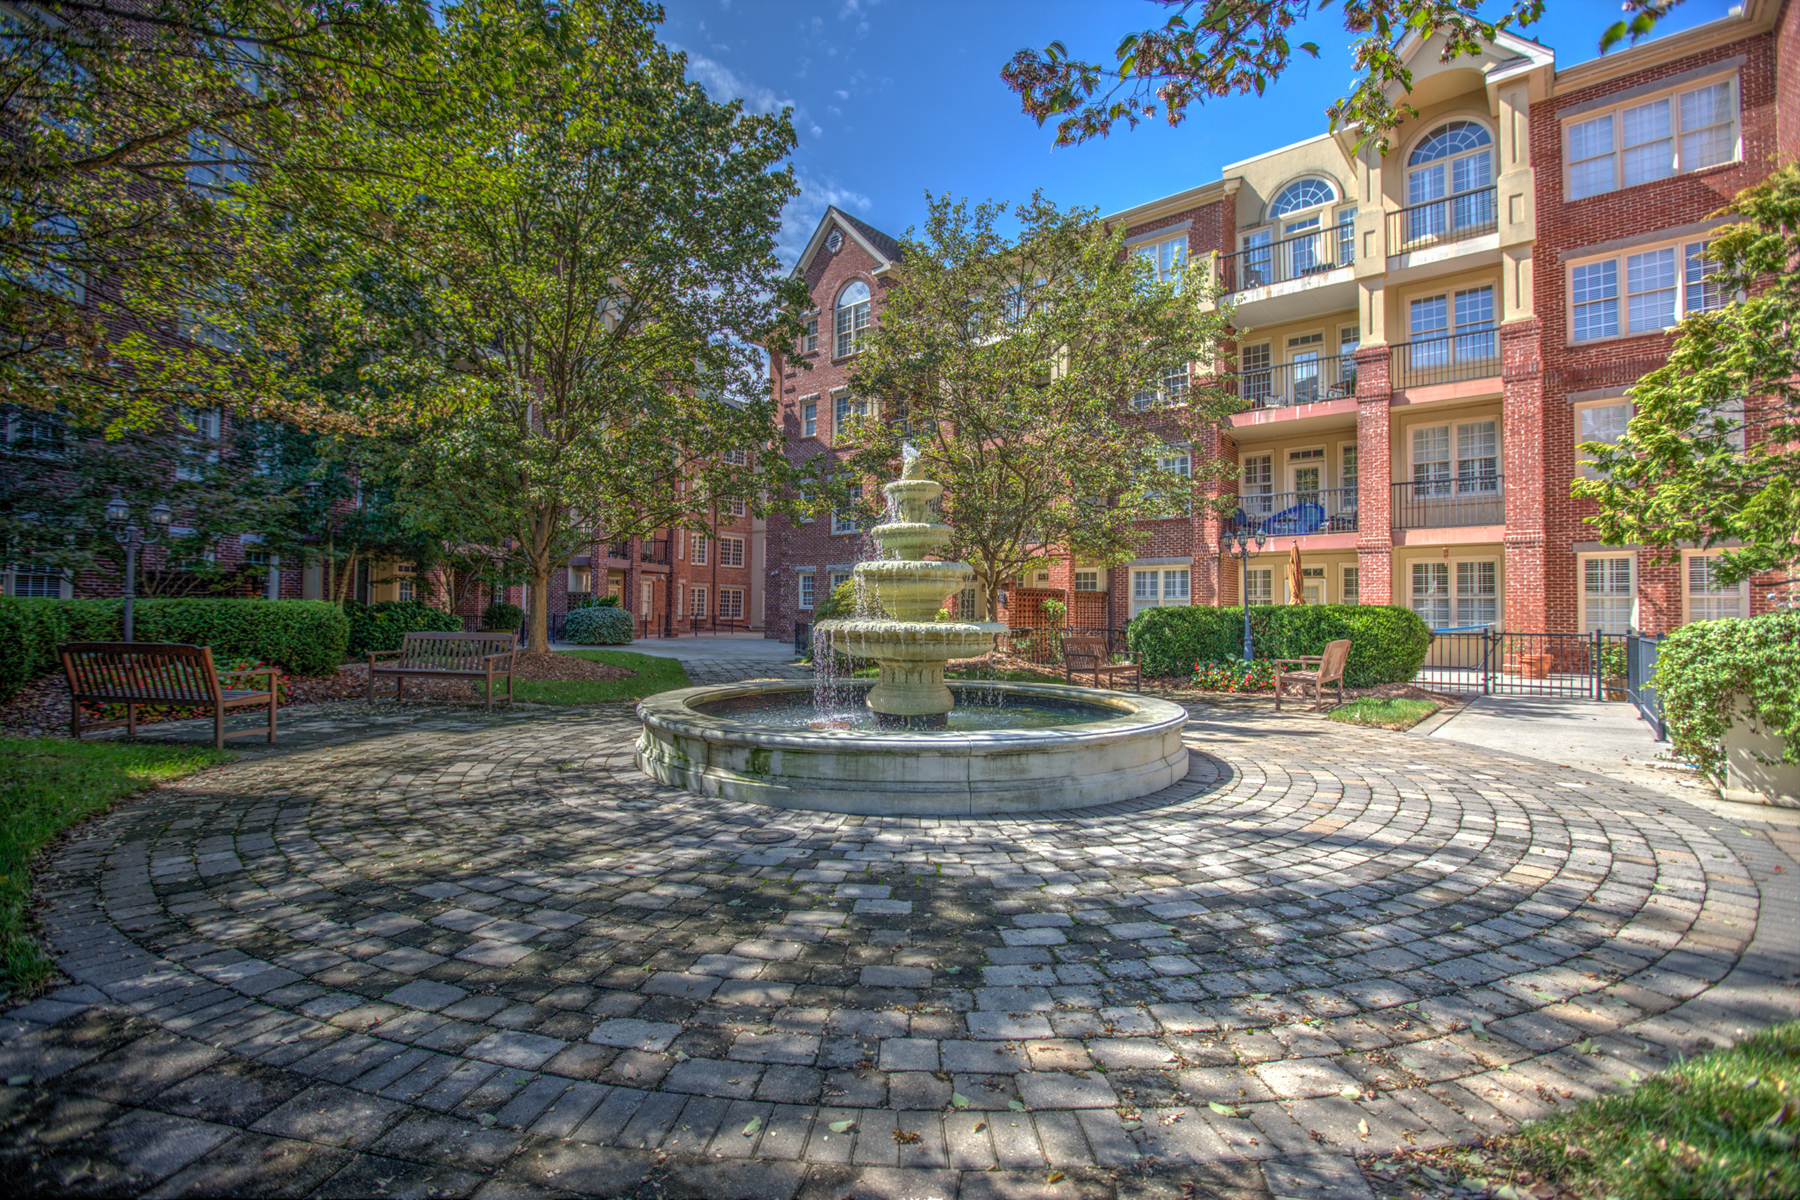 Single Family Home for Sale at Largest Two Bedroom Condo In Brookwood Place 1735 Peachtree Street NE #324 Atlanta, Georgia 30309 United States